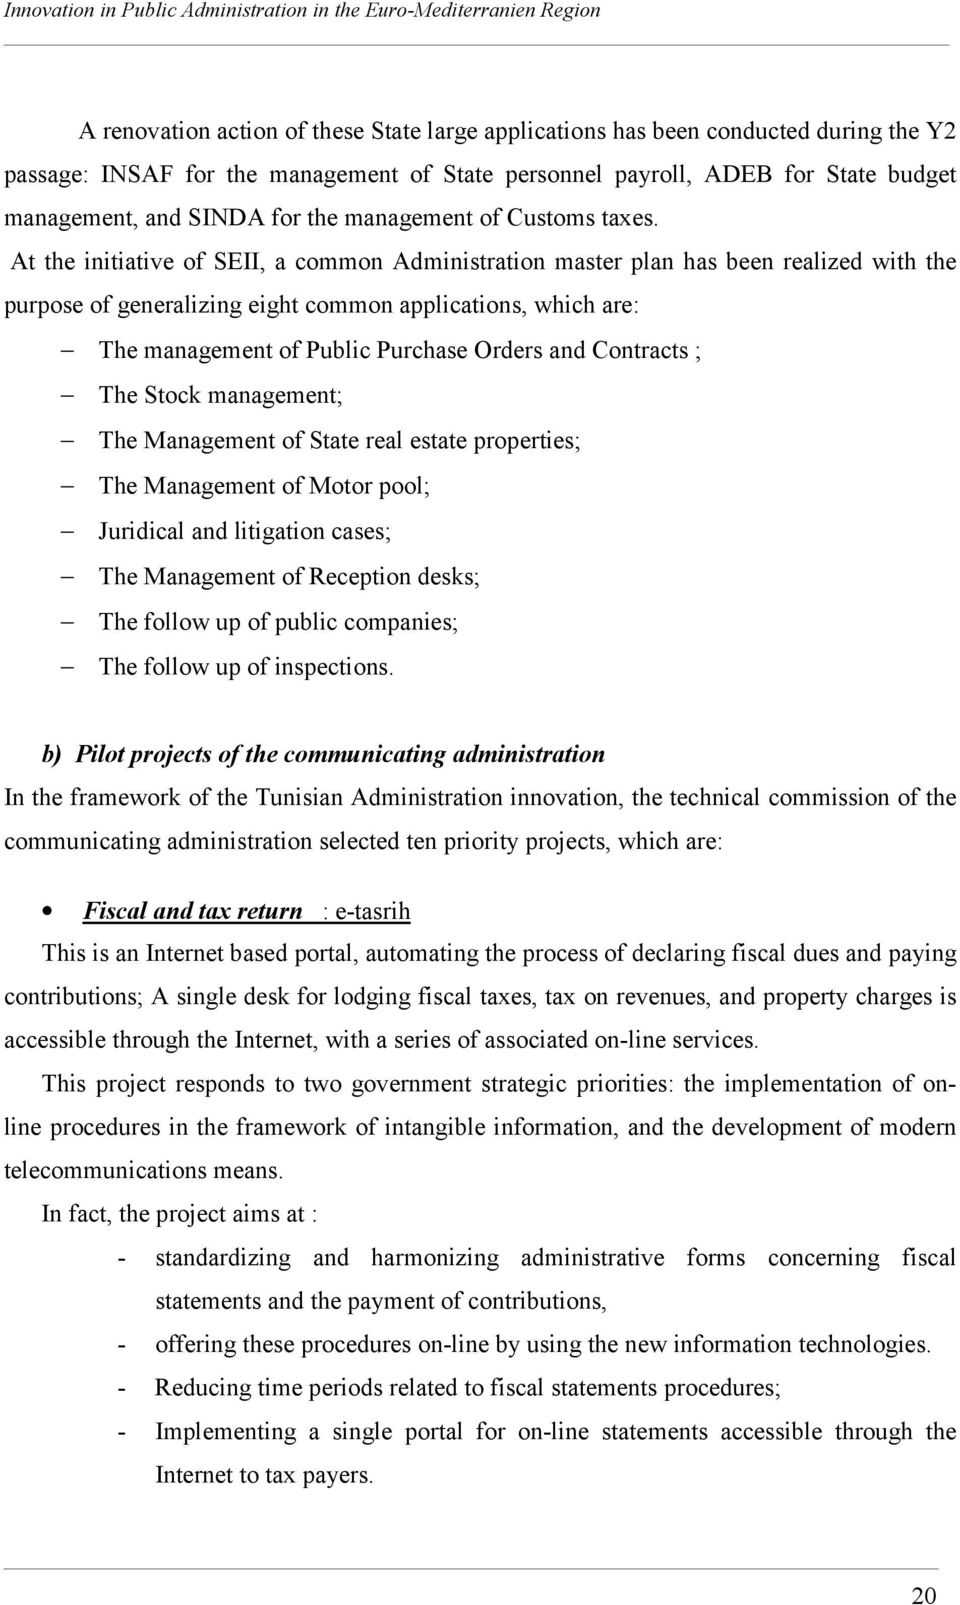 At the initiative of SEII, a common Administration master plan has been realized with the purpose of generalizing eight common applications, which are: The management of Public Purchase Orders and